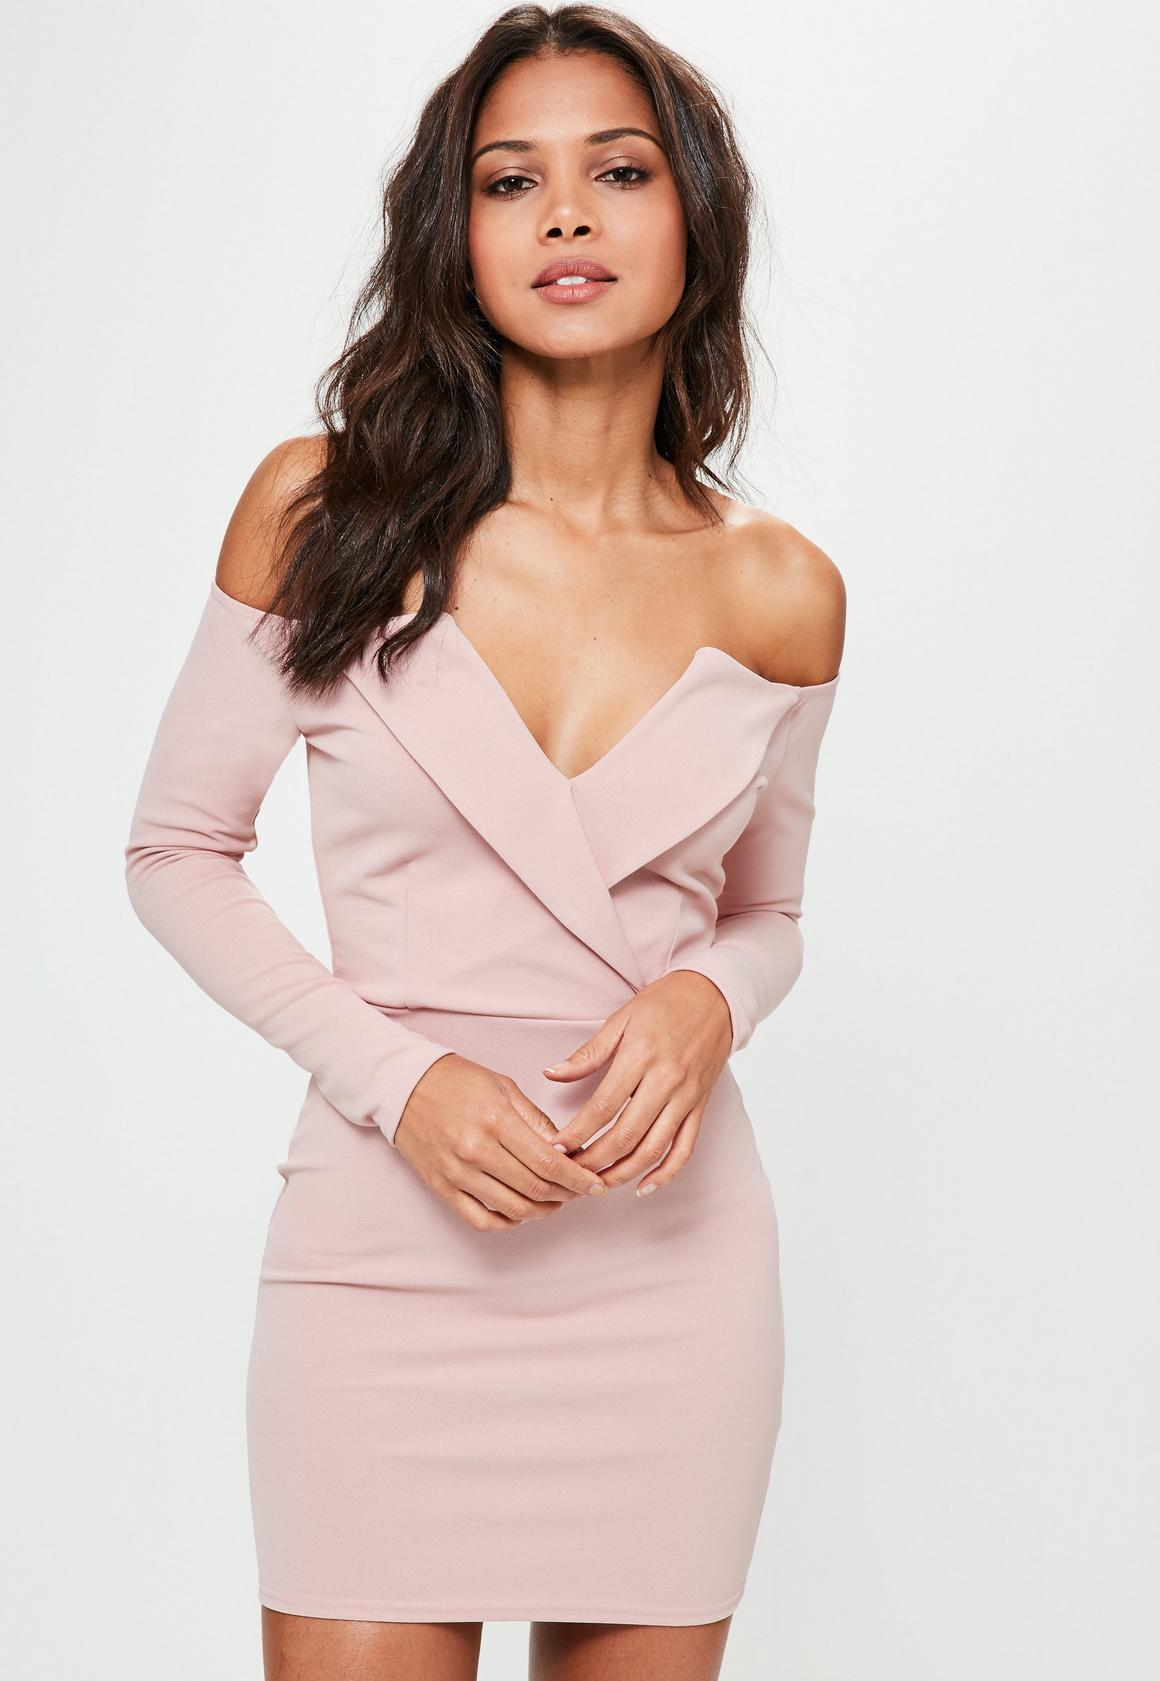 Off the Shoulder Dresses - Bardot Dresses Online | Missguided